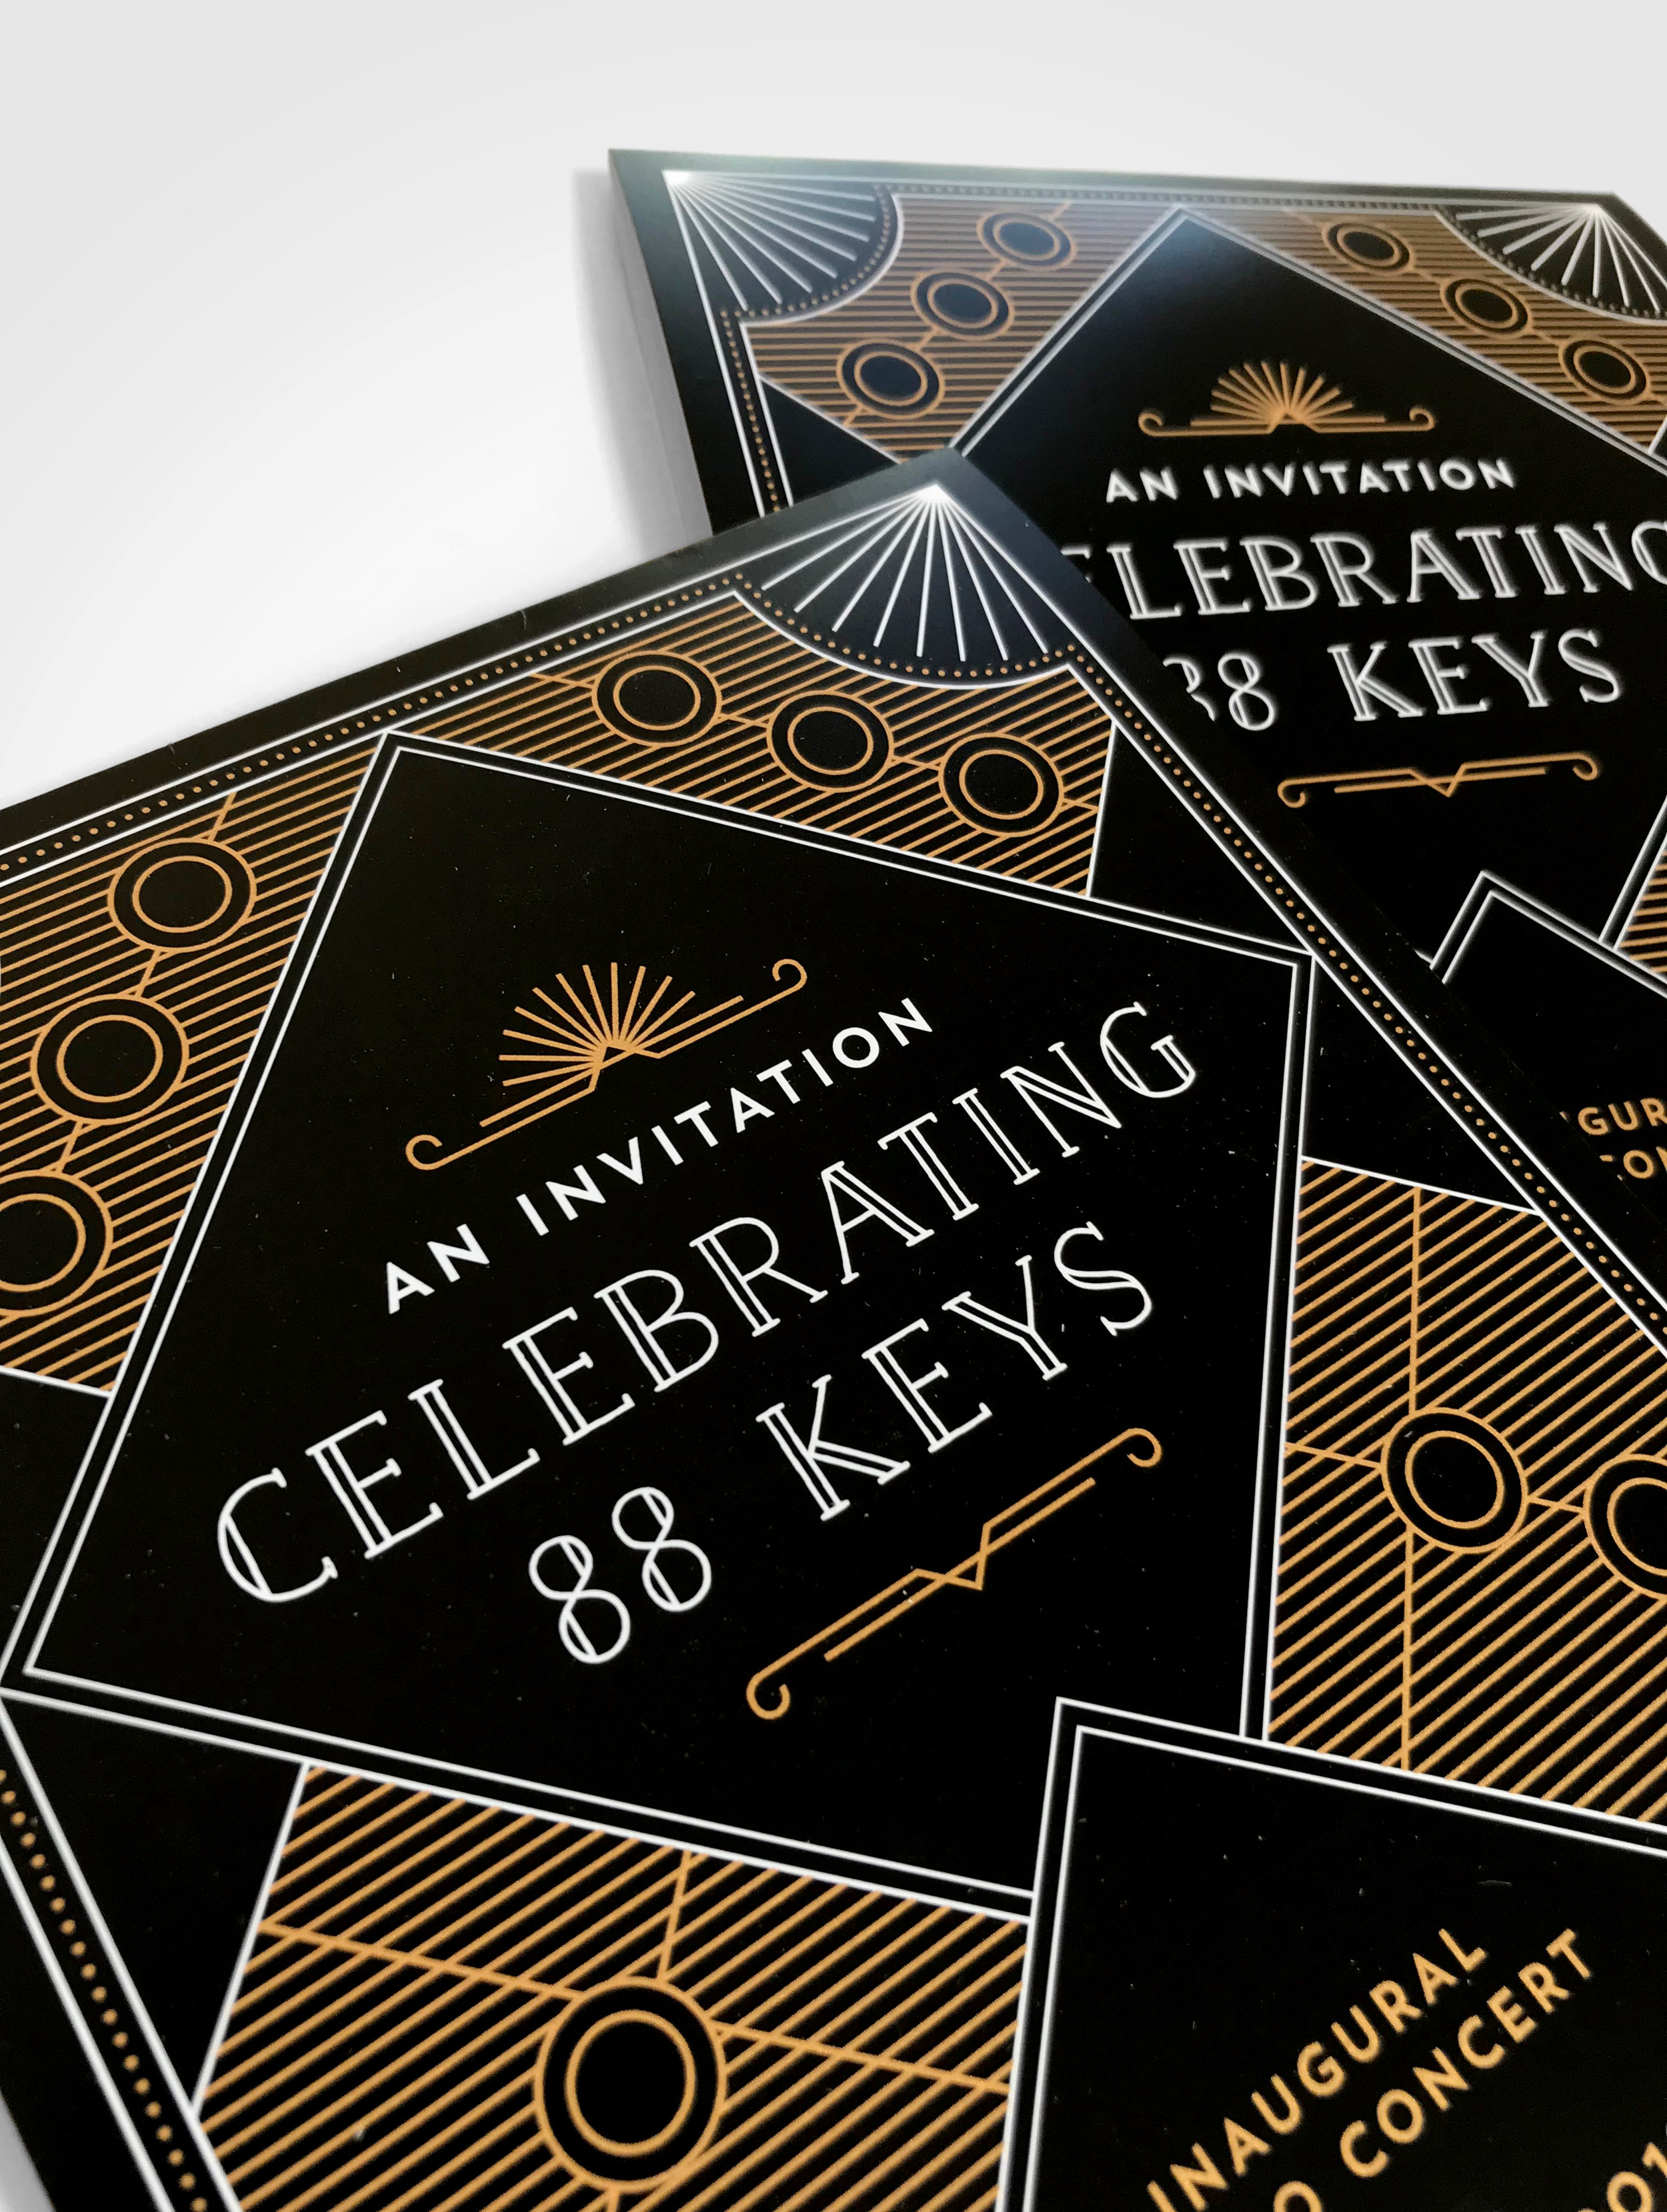 Natasia Designs Edmonton Graphic Designer Event Invitation Design and Promotion University of Alberta Faculty of Arts Celebrating 88 Keys Piano Invite Design and Save the Date Print Gold Ink